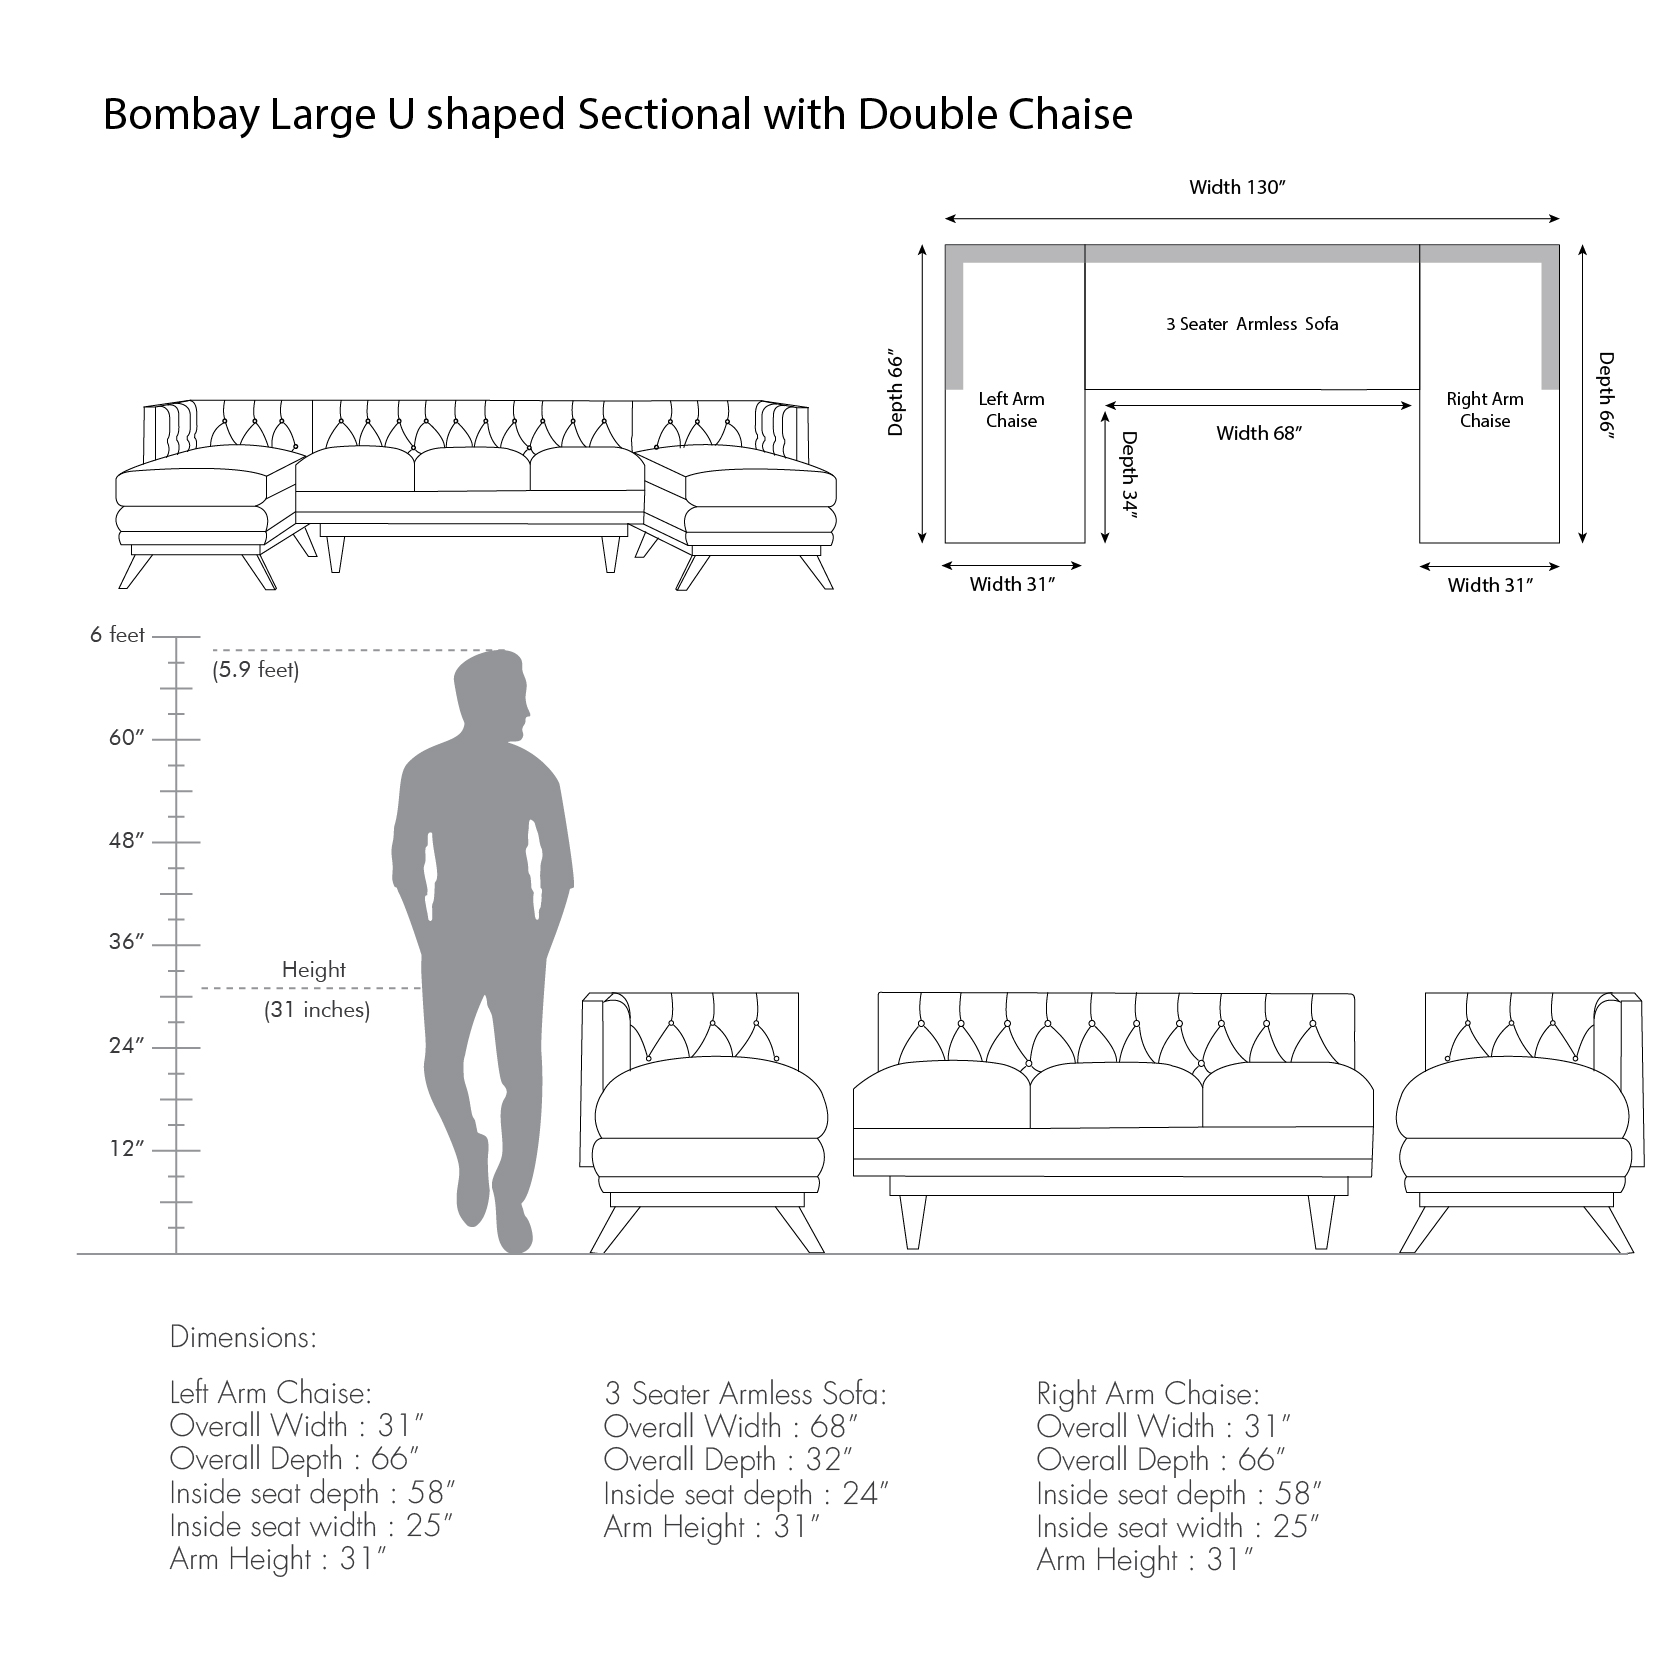 Bombay Large U-shaped Sectional with Double Chaise